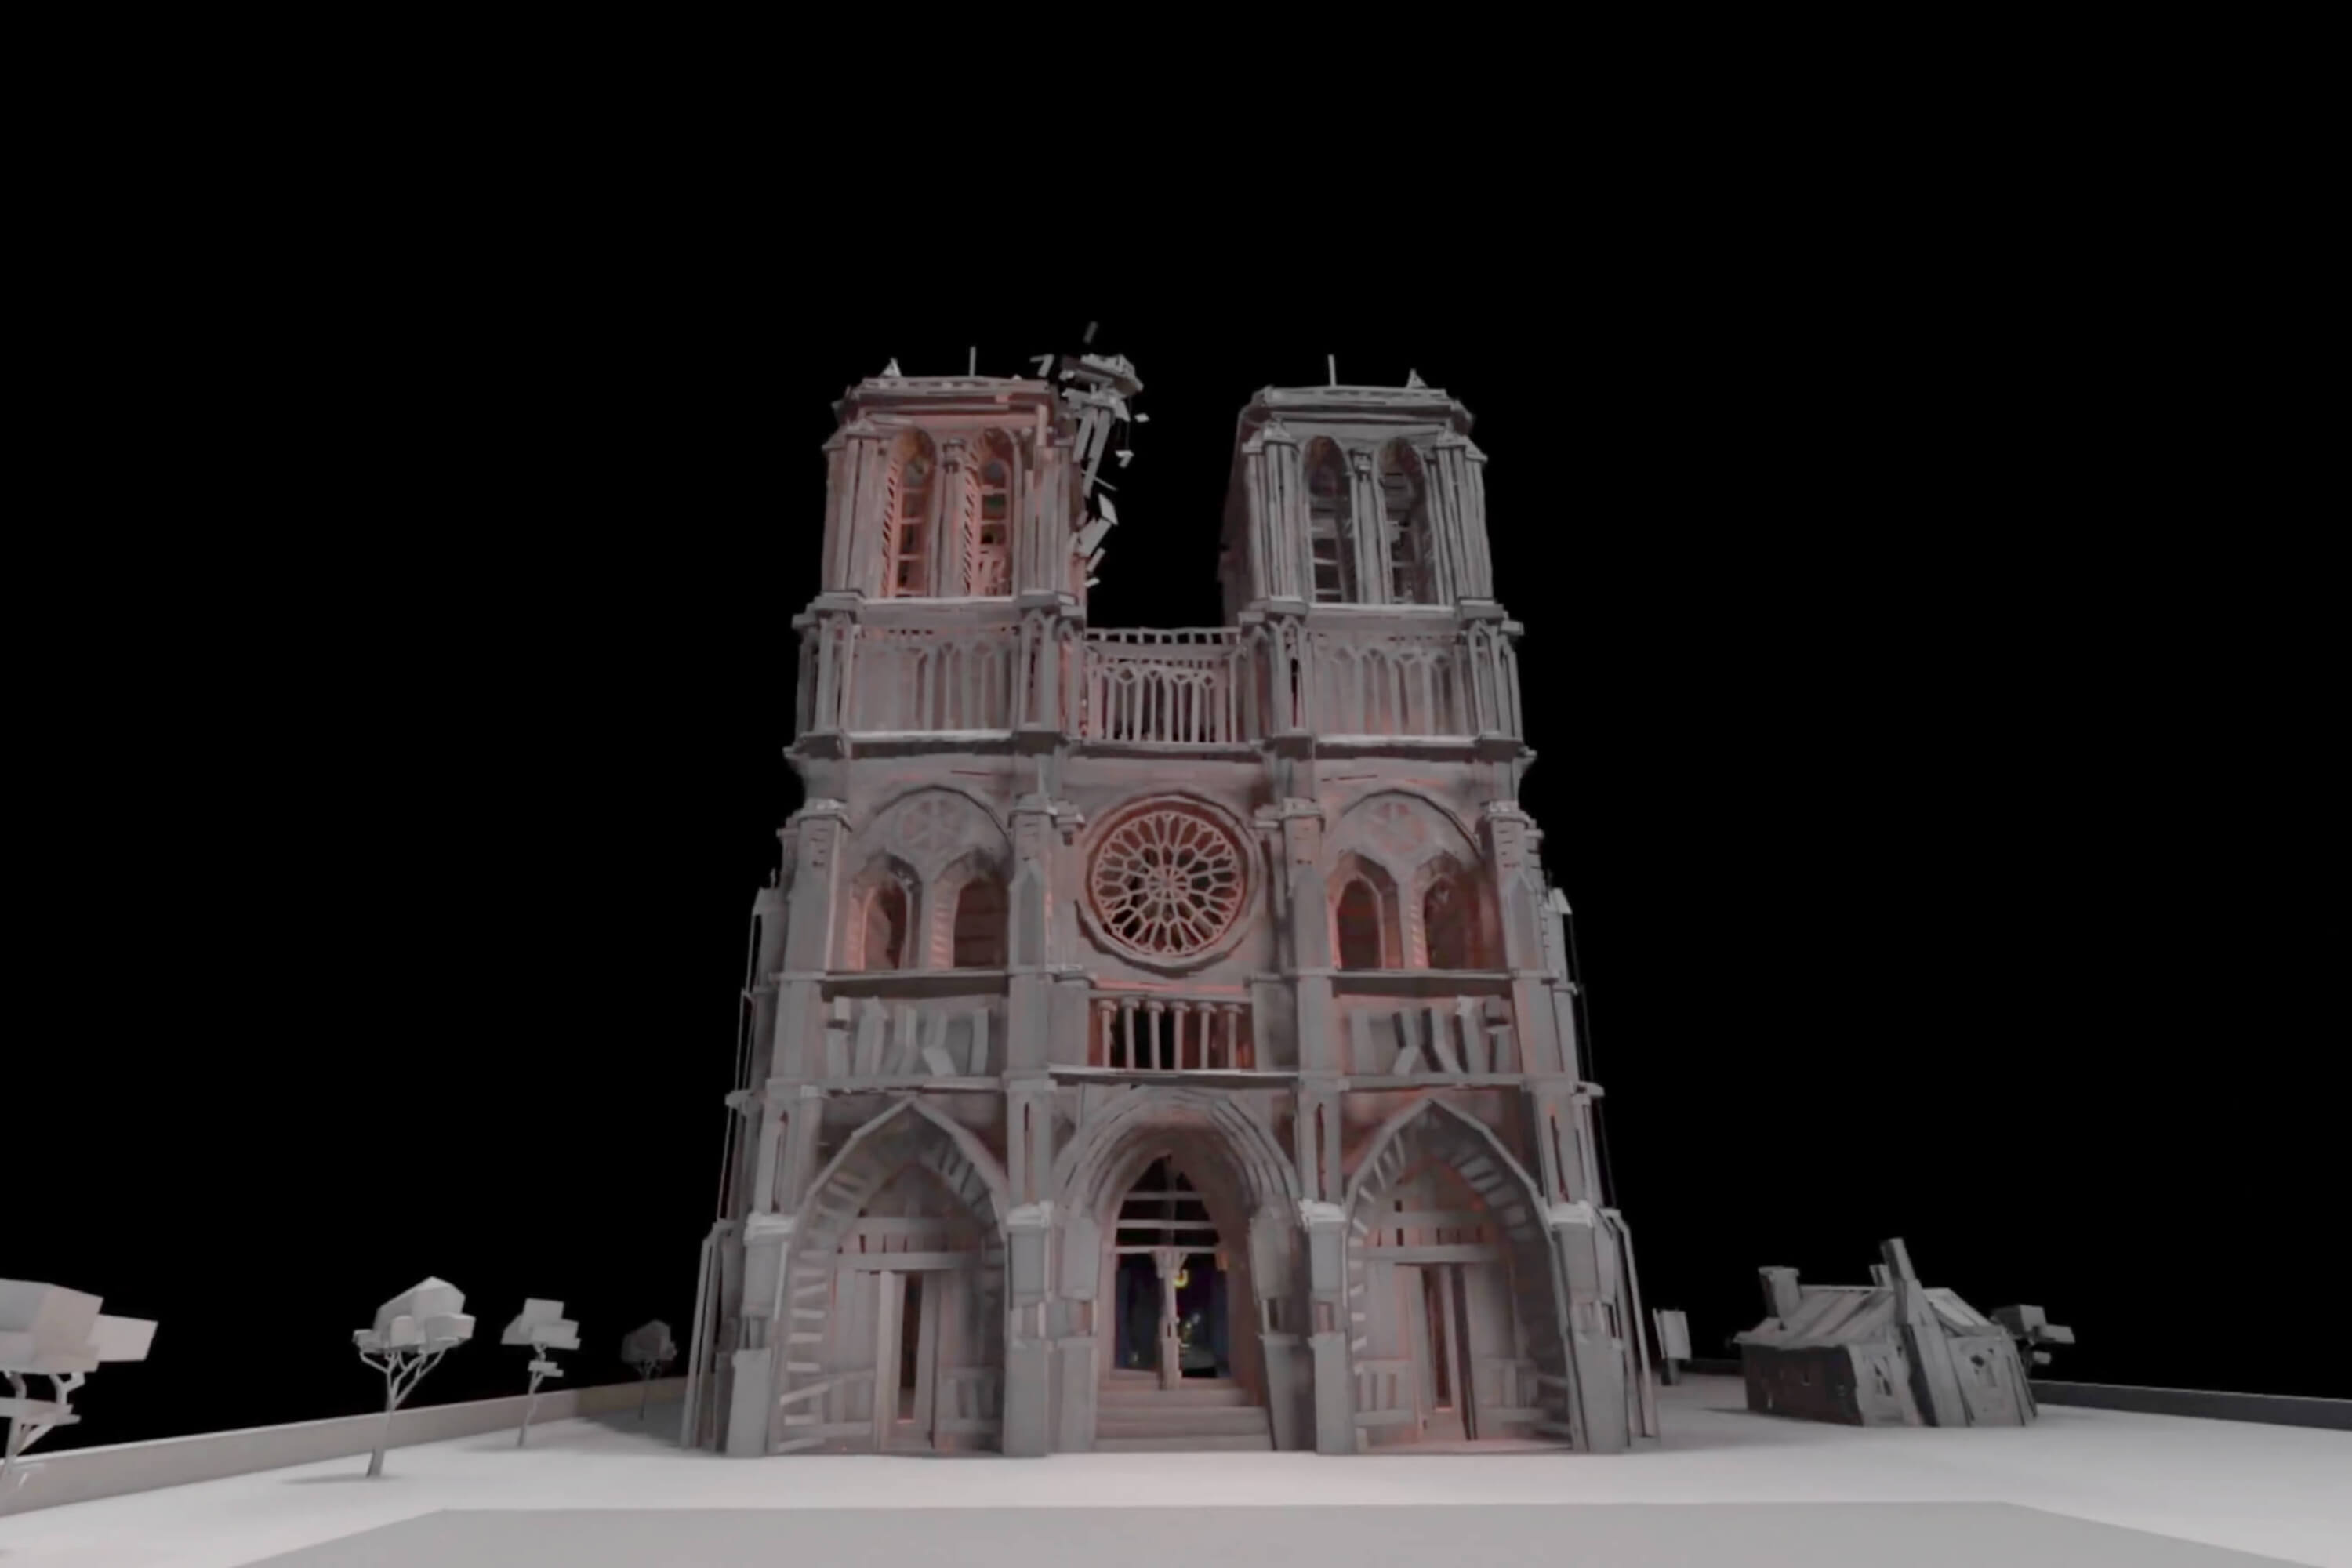 The computer-generated facade of the cathedral of Notre Dame stands in front of a black background.